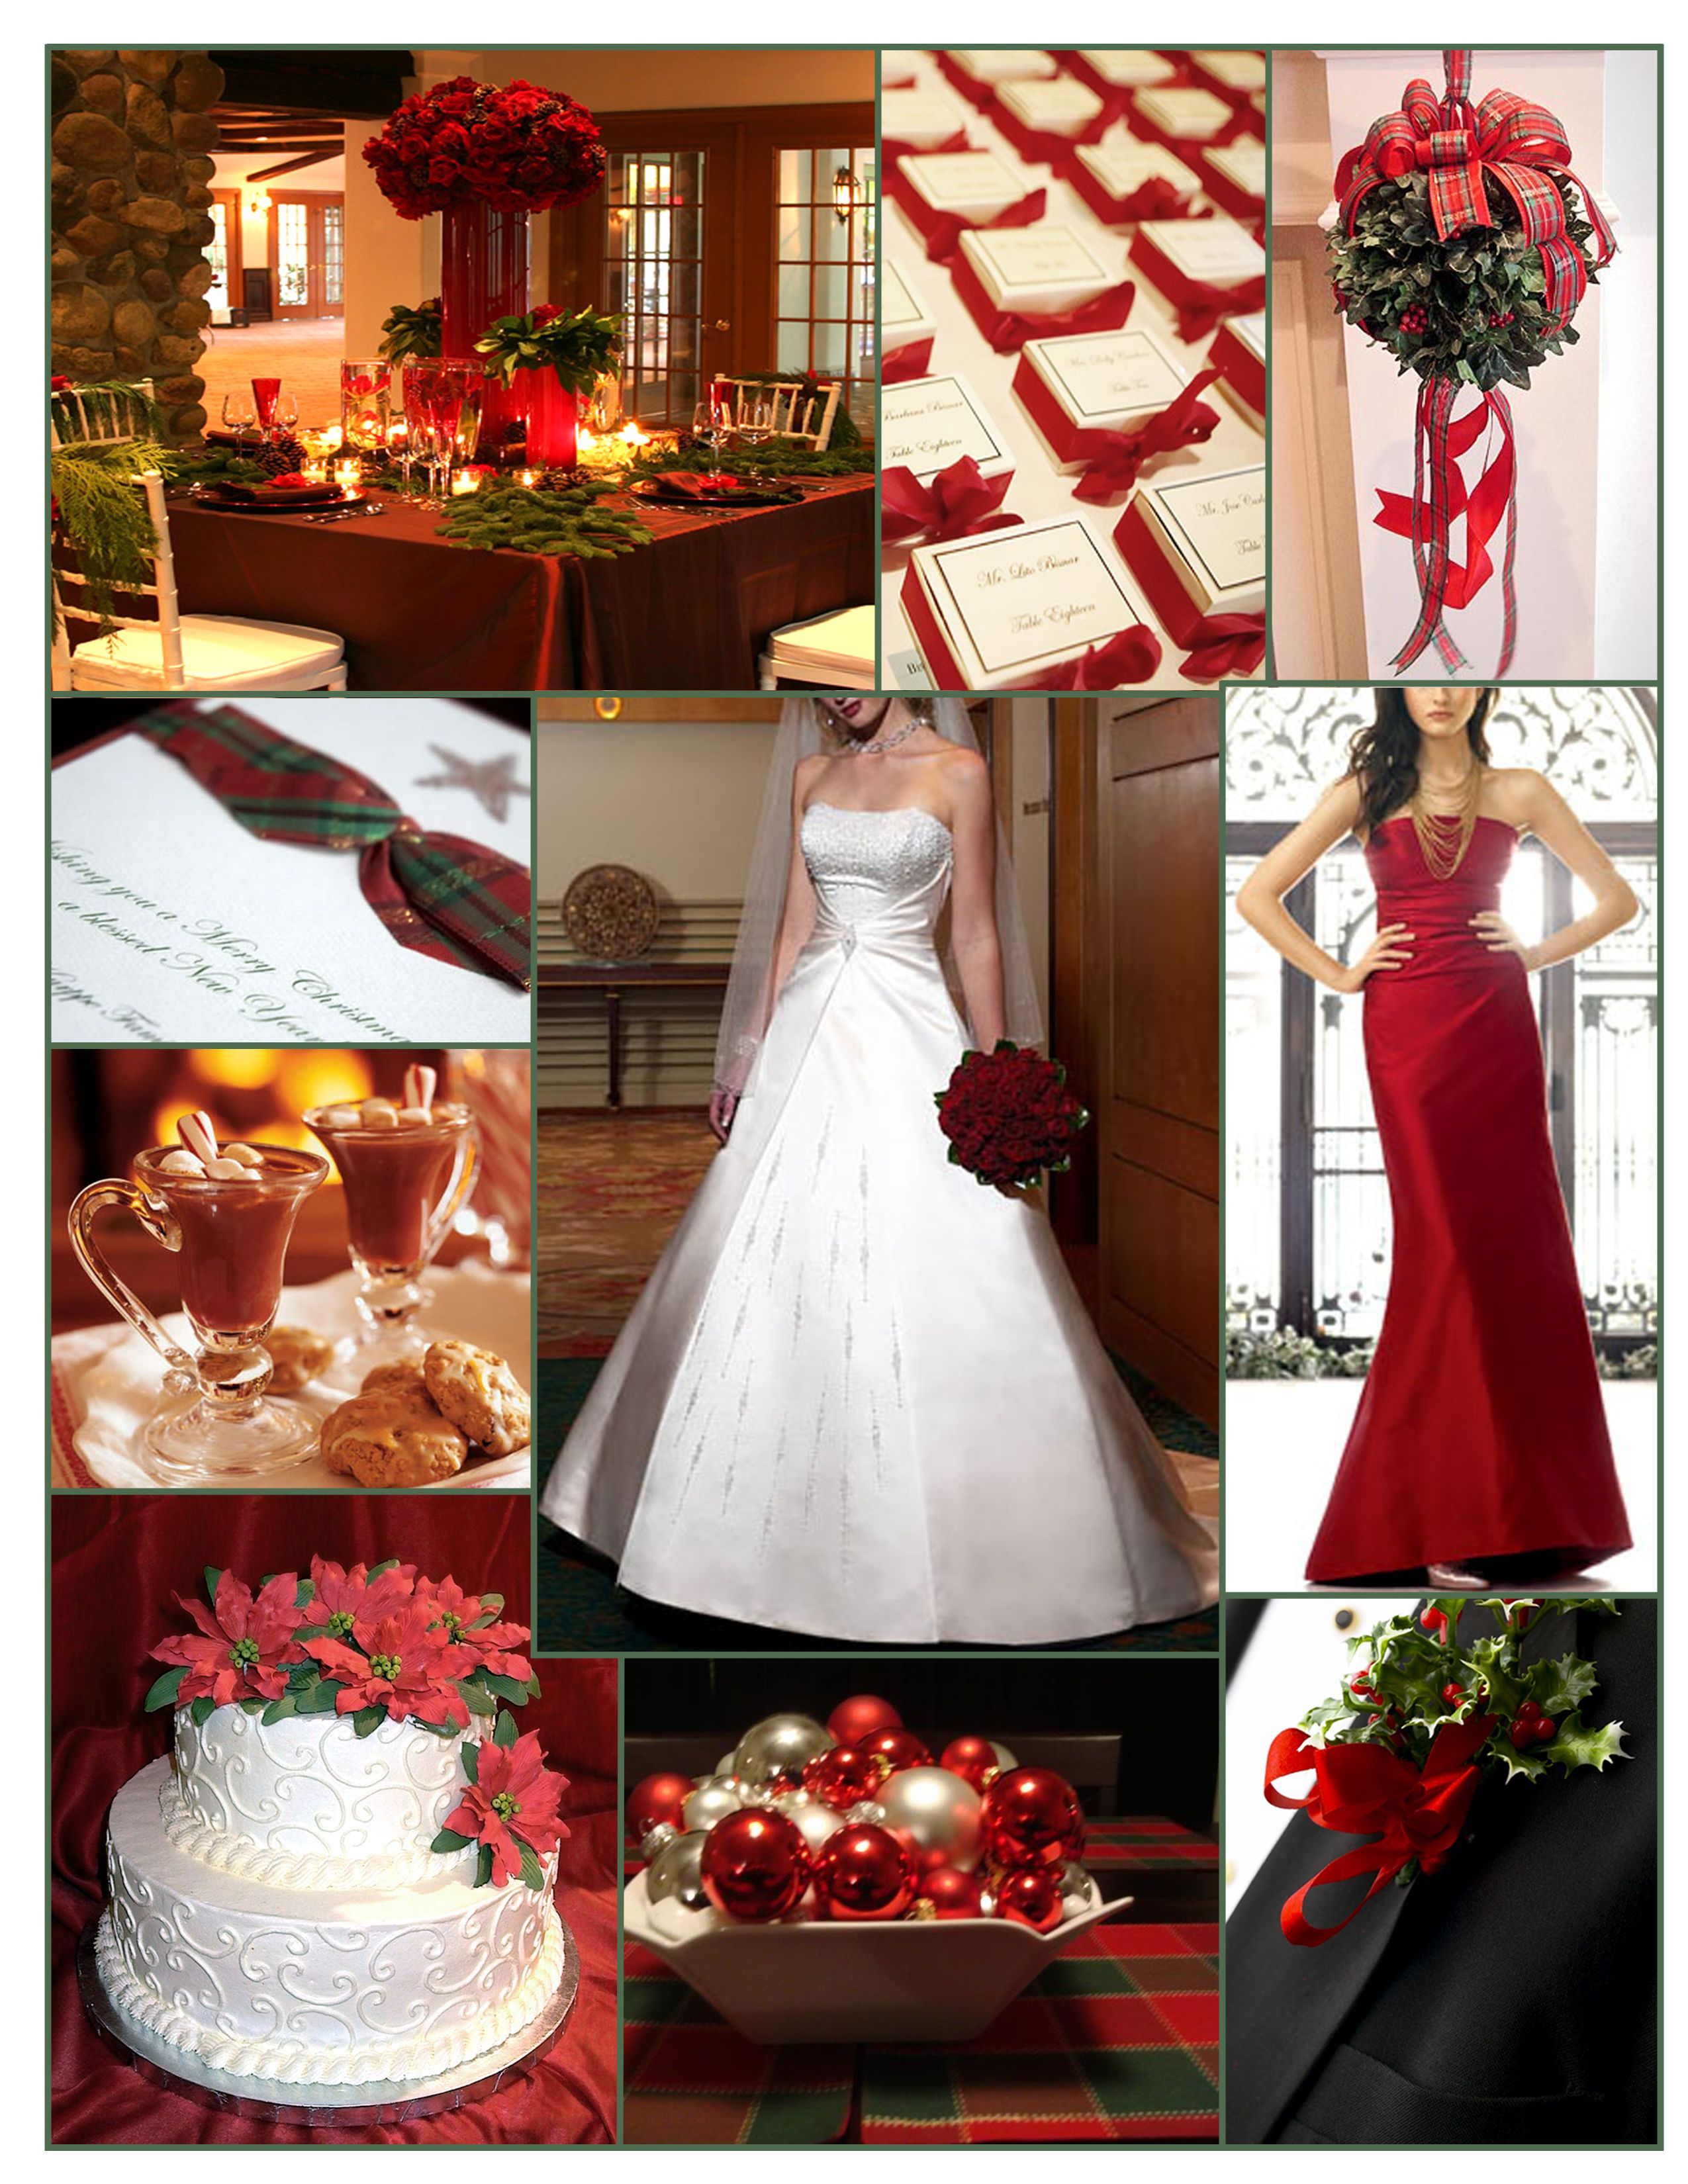 Christmas In July Wedding.Pin On Our Christmas Wedding